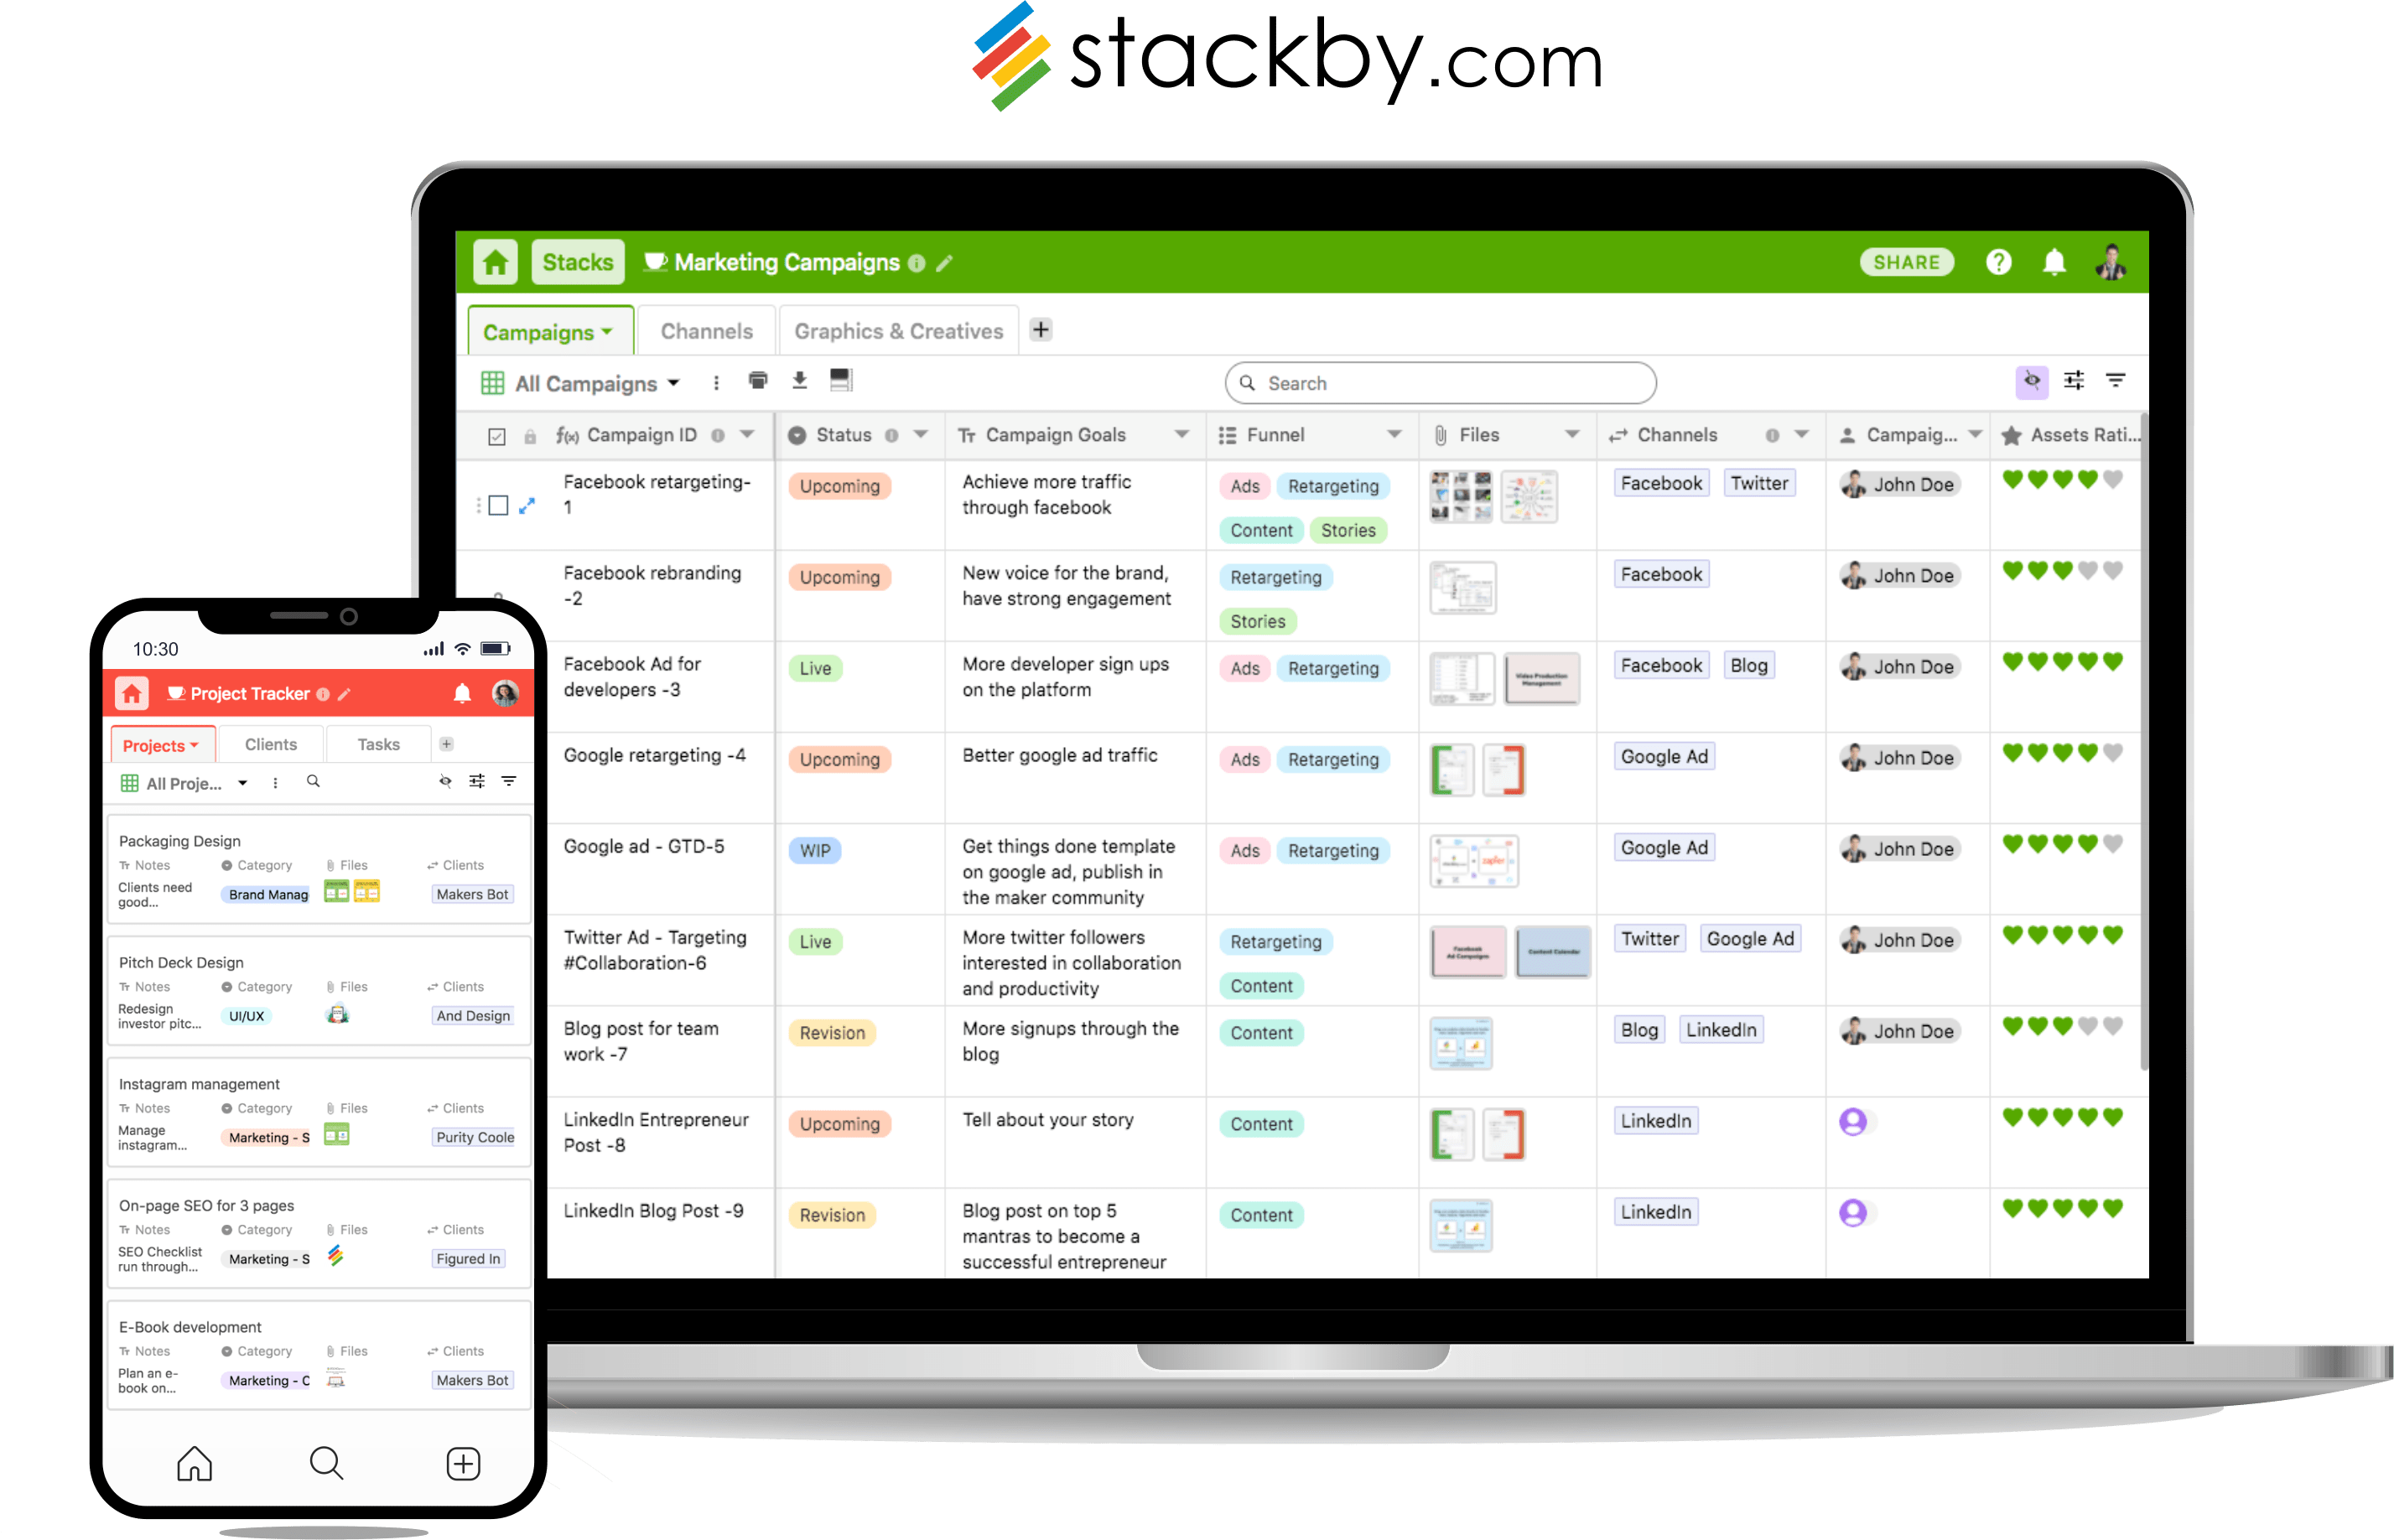 Stackby helps teams build their own tools and unlock the full potential of creating software.With the ease of use of spreadsheets, power of databases and connections to best services (APIs), Stackby is an all-in-one platform that allows you to not only plan and manage but also automate your life and work. It's real-time, collaborative and has the ability to connect columns to third party services to pull information automatically. With traditional software dictating how you should work, we believe in the contrary - you should dictate how software should work. Our mission is to empower the billion spreadsheet users to build powerful software tools for their teams.